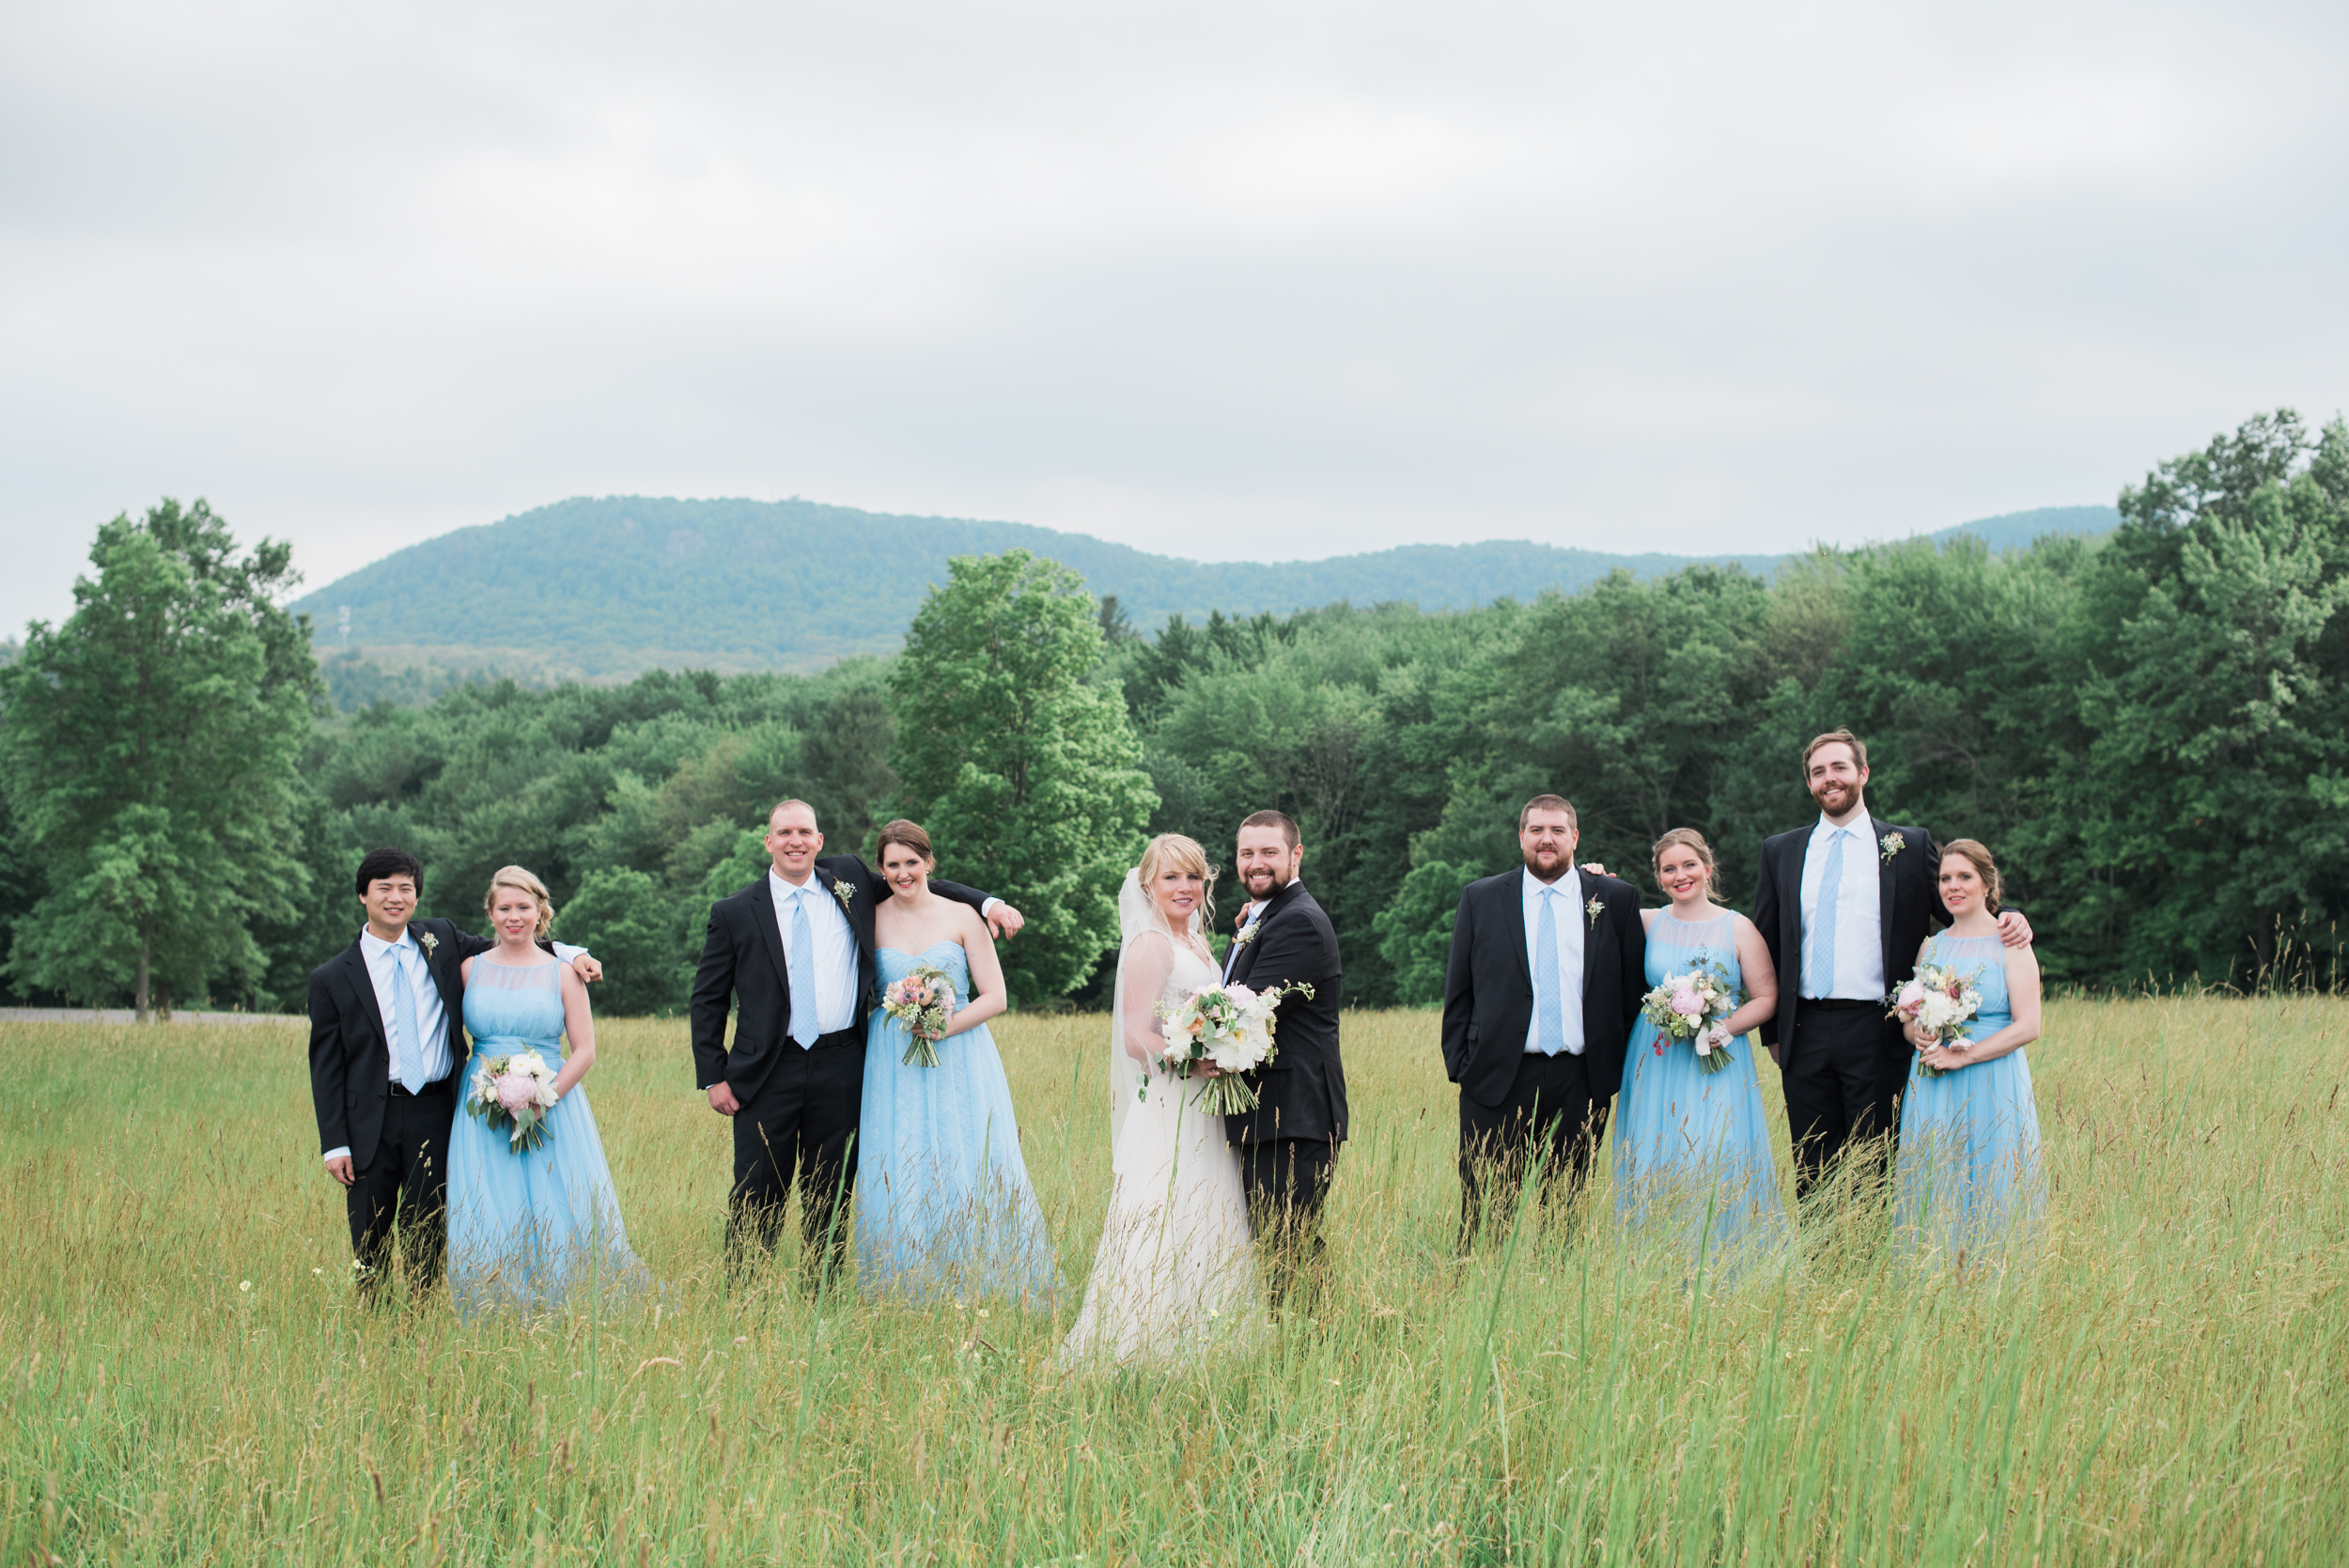 Wedding photogrpahy in the Berkshires MA